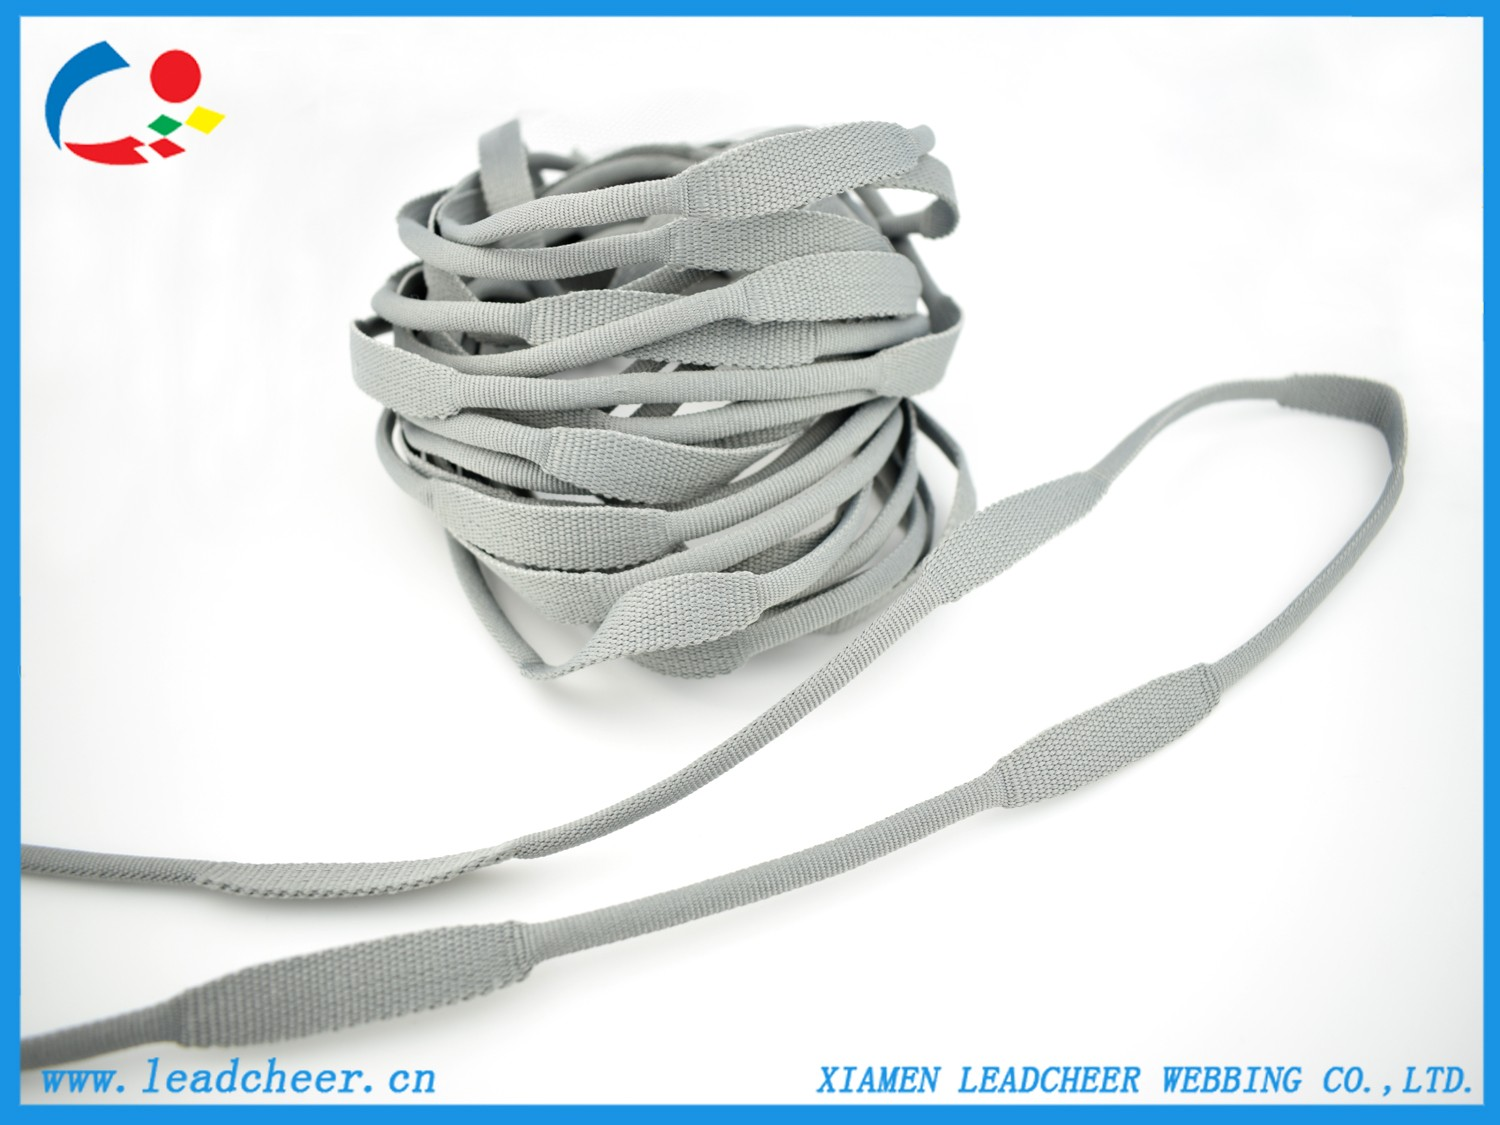 High quality Decoration Variable width strap for bag or garment Quotes,China Decoration Variable width strap for bag or garment Factory,Decoration Variable width strap for bag or garment Purchasing